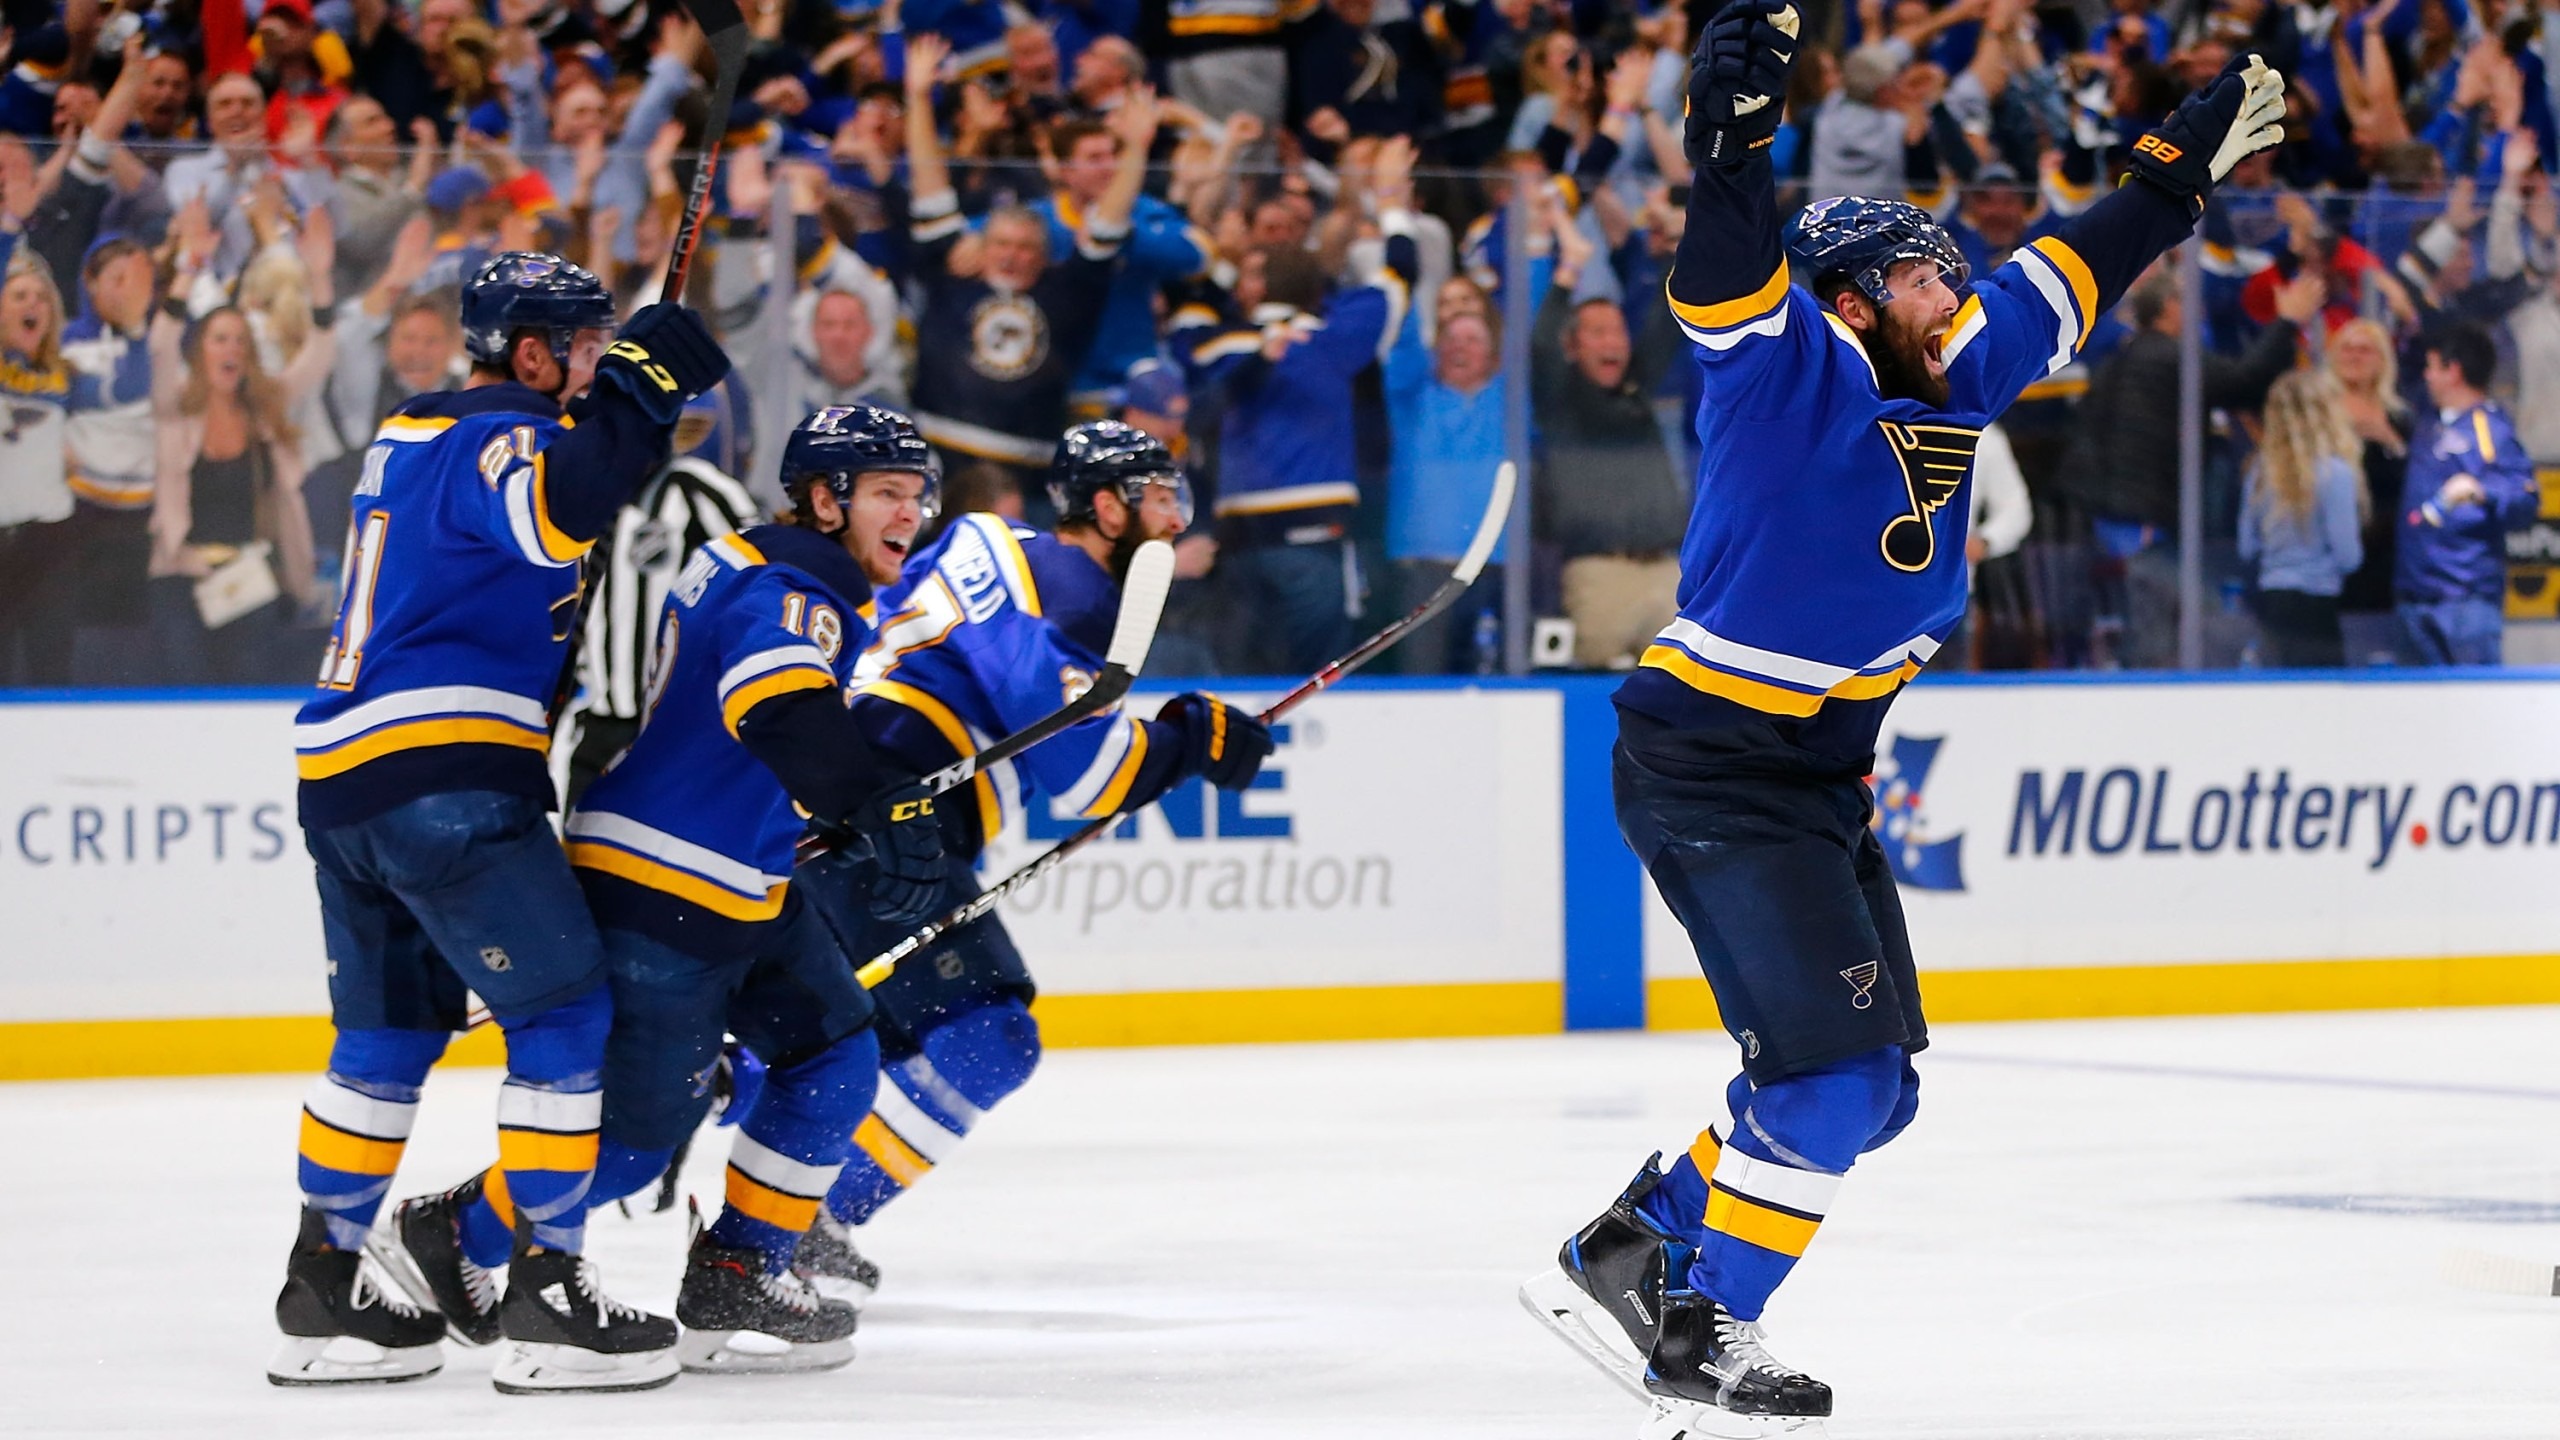 Play Gloria St Louis Blues Win 2ot Thriller To Defeat Dallas And